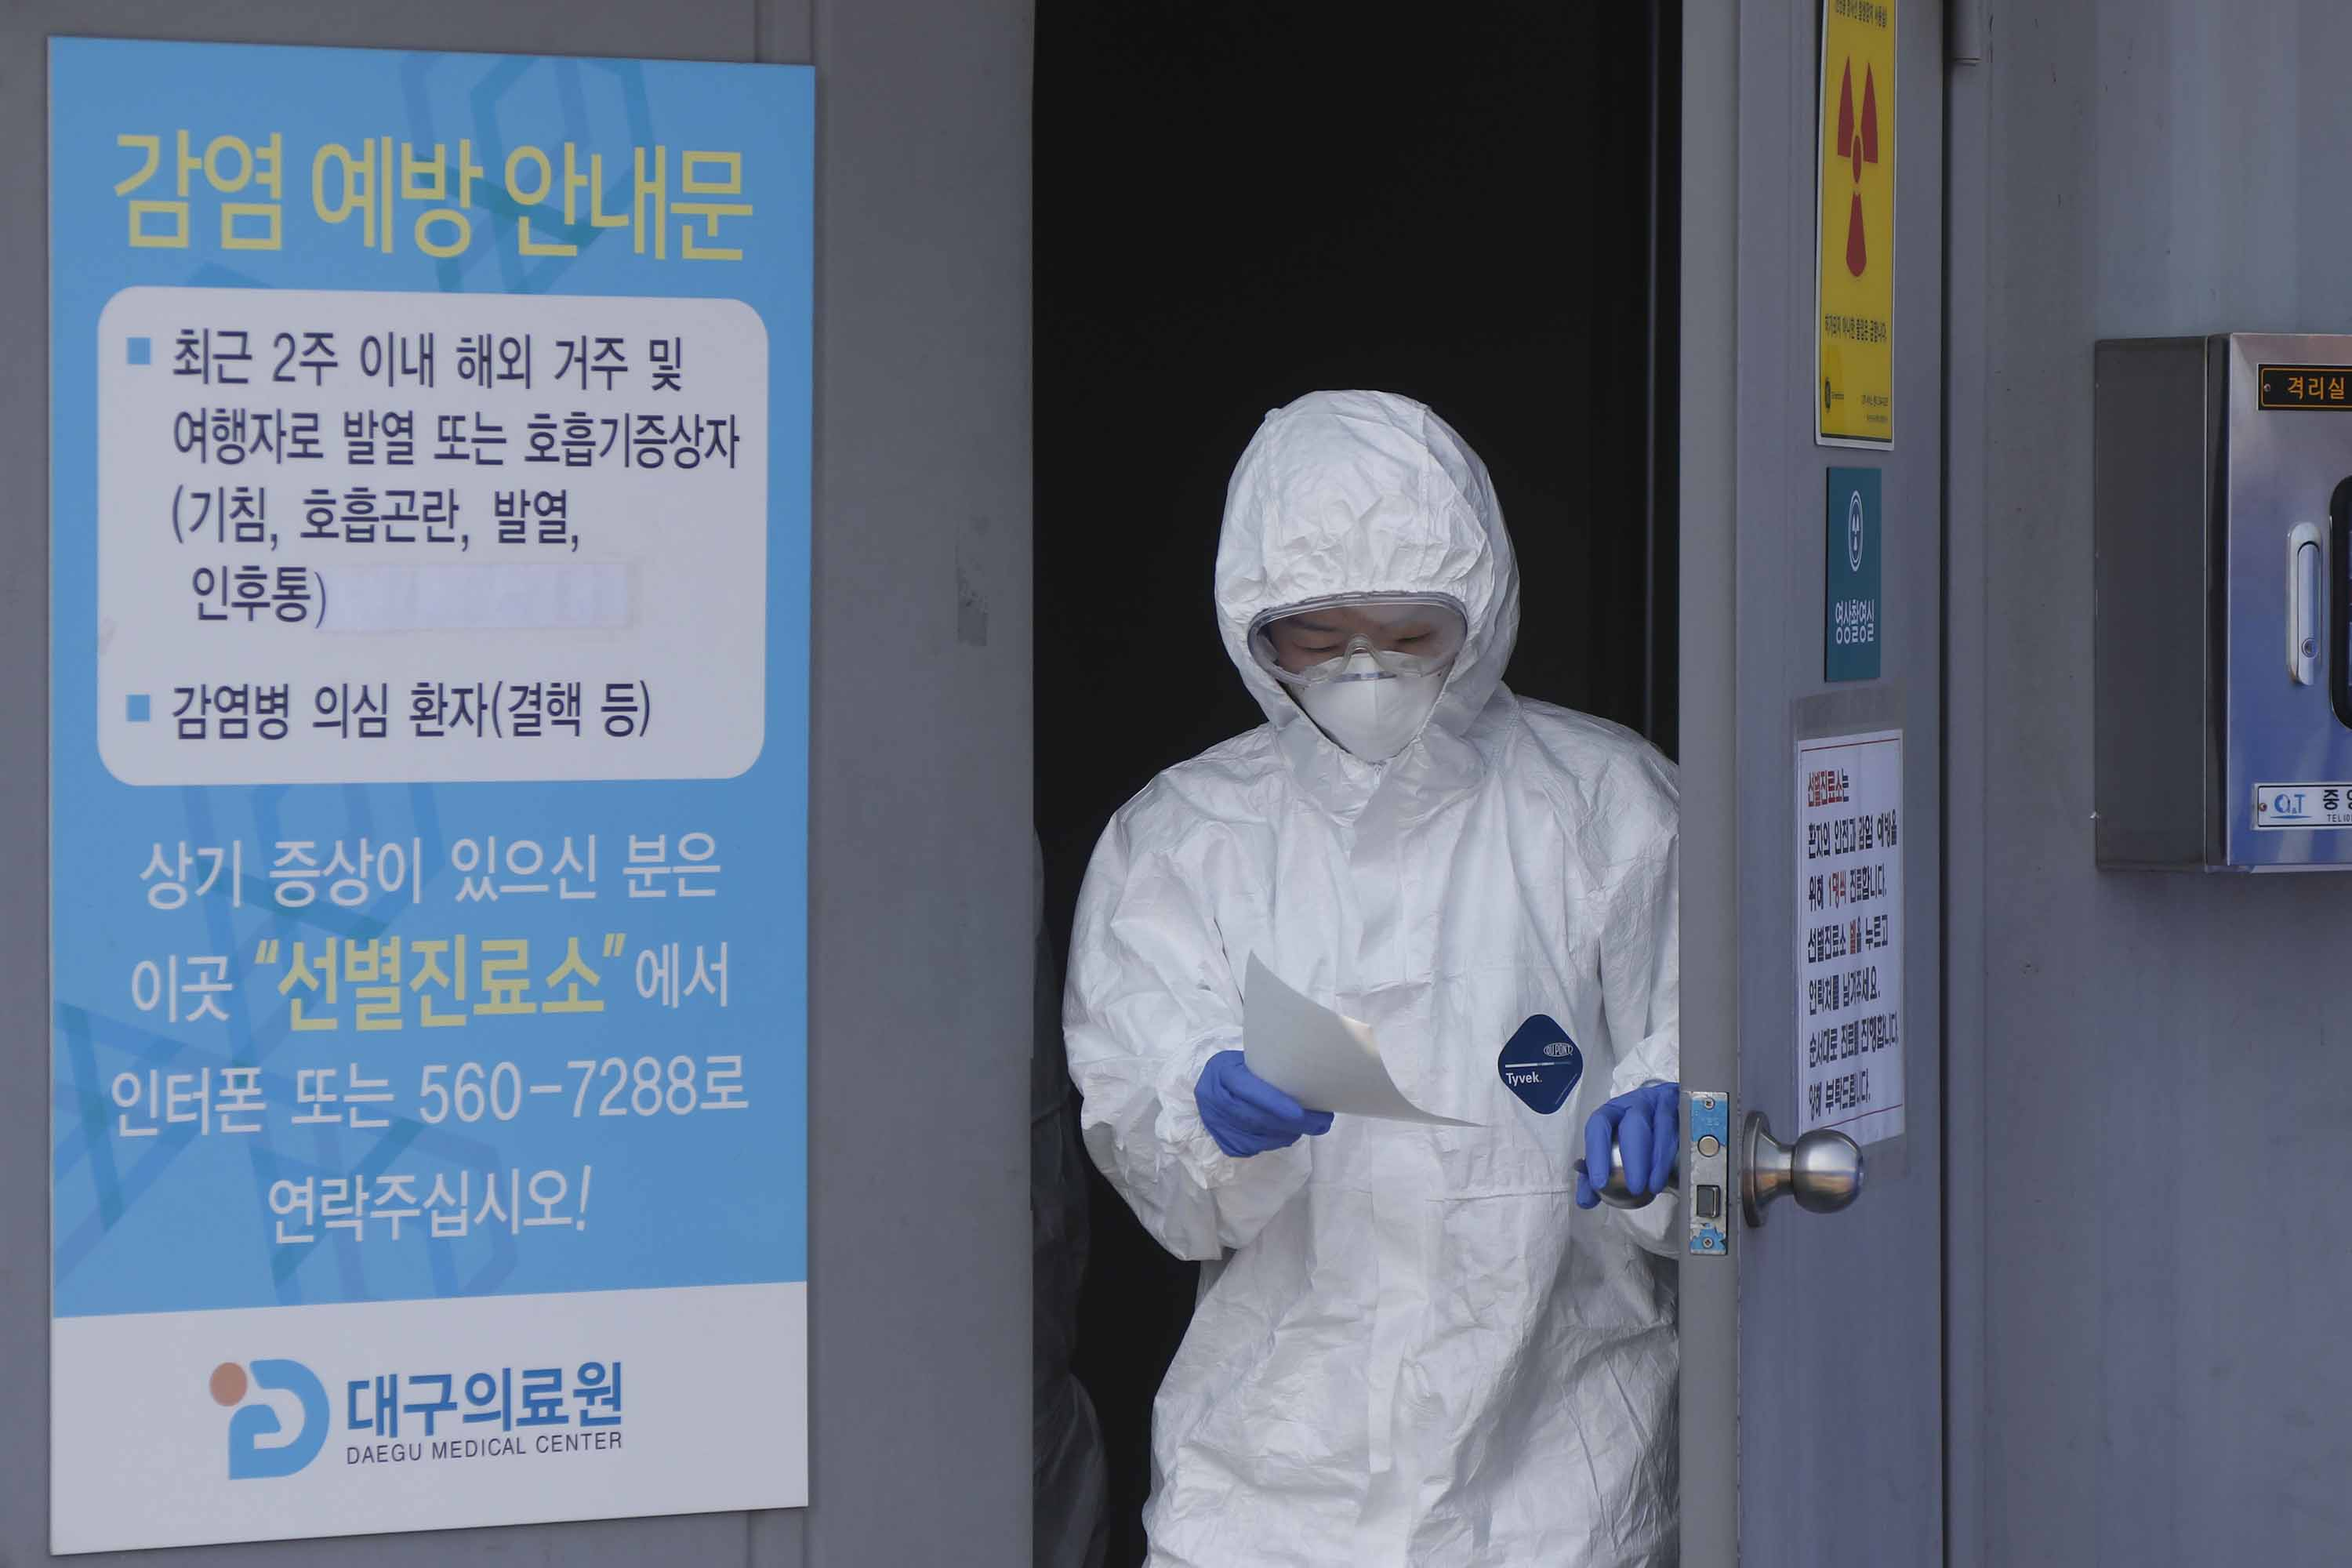 A member of staff is seen on Thursday at a medical center in the city of Daegu, South Korea, where new cases of the coronavirus have been reported.